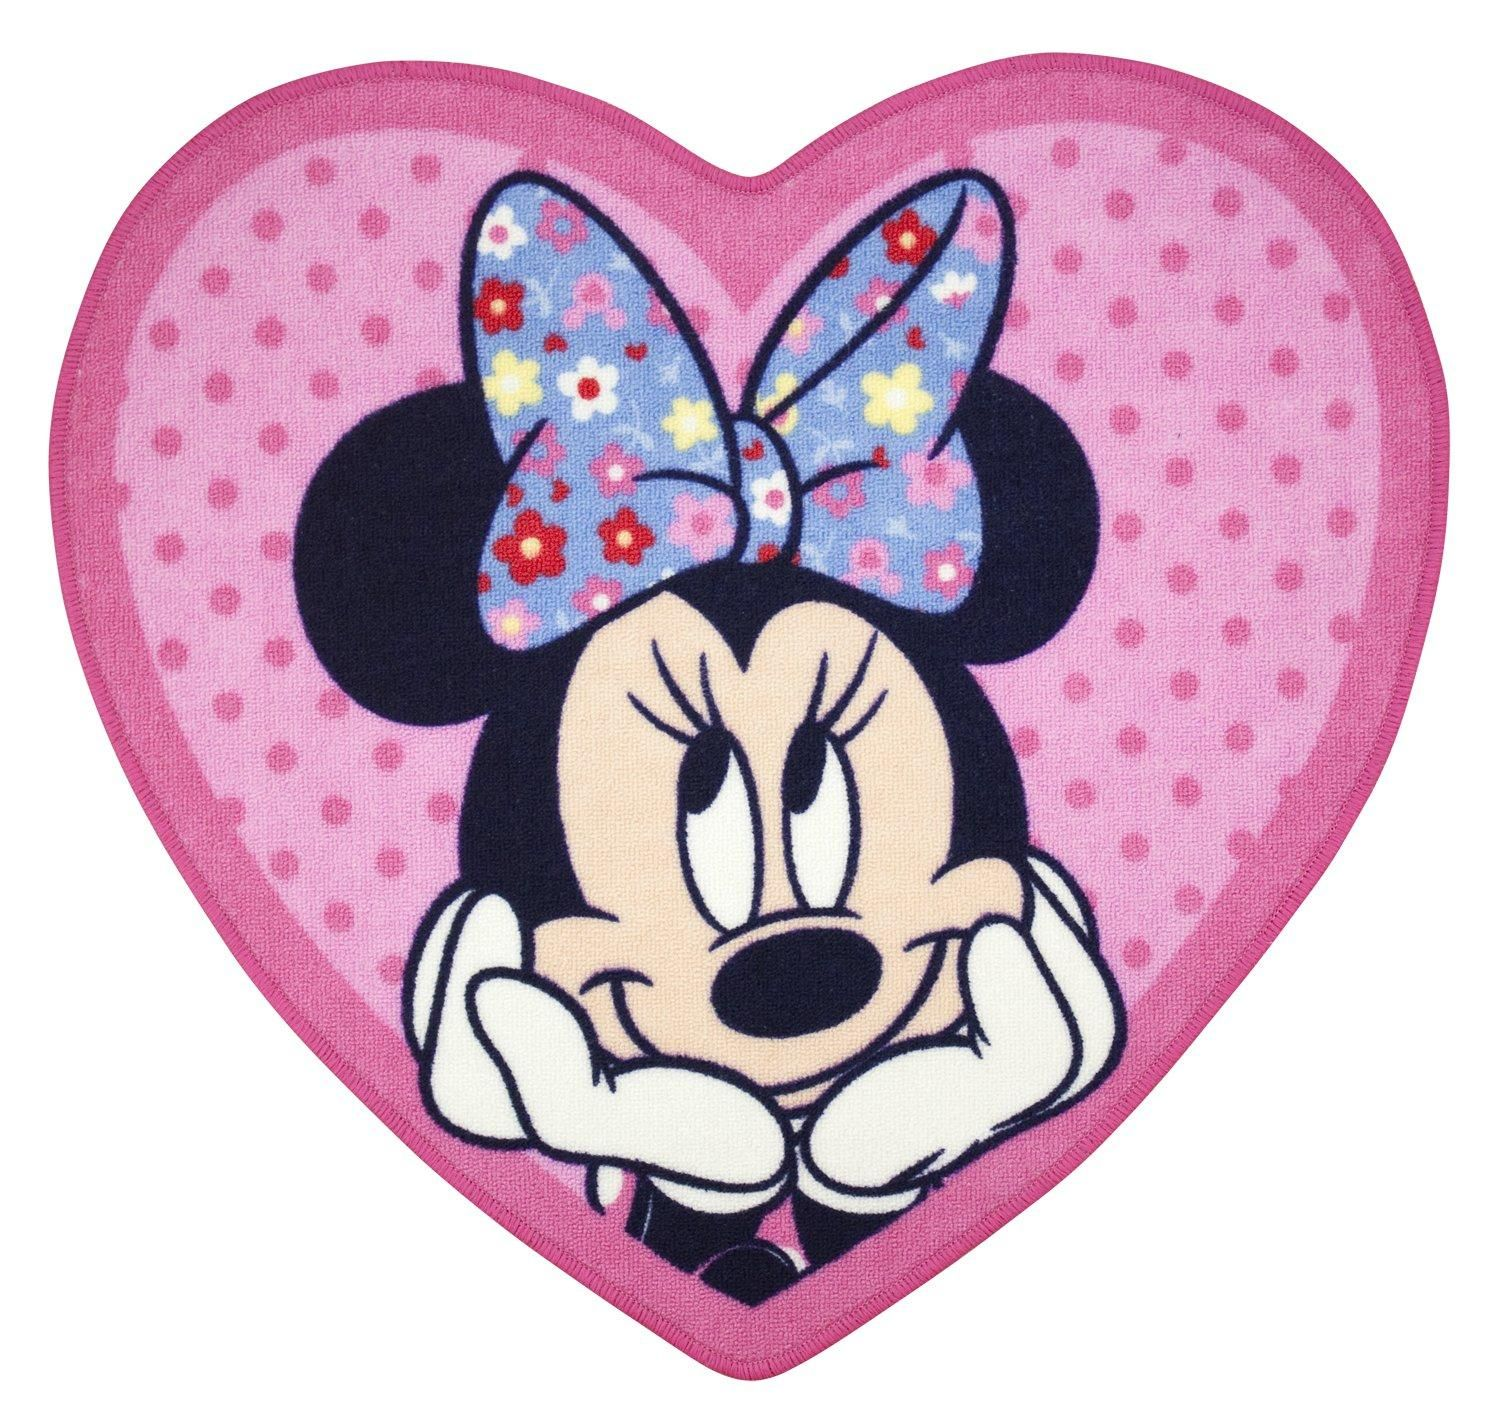 Attractive Find This Pin And More On Minnie And Friends By Marjoengels. Character  World Disney Minnie Mouse Shopaholic Shaped Rug